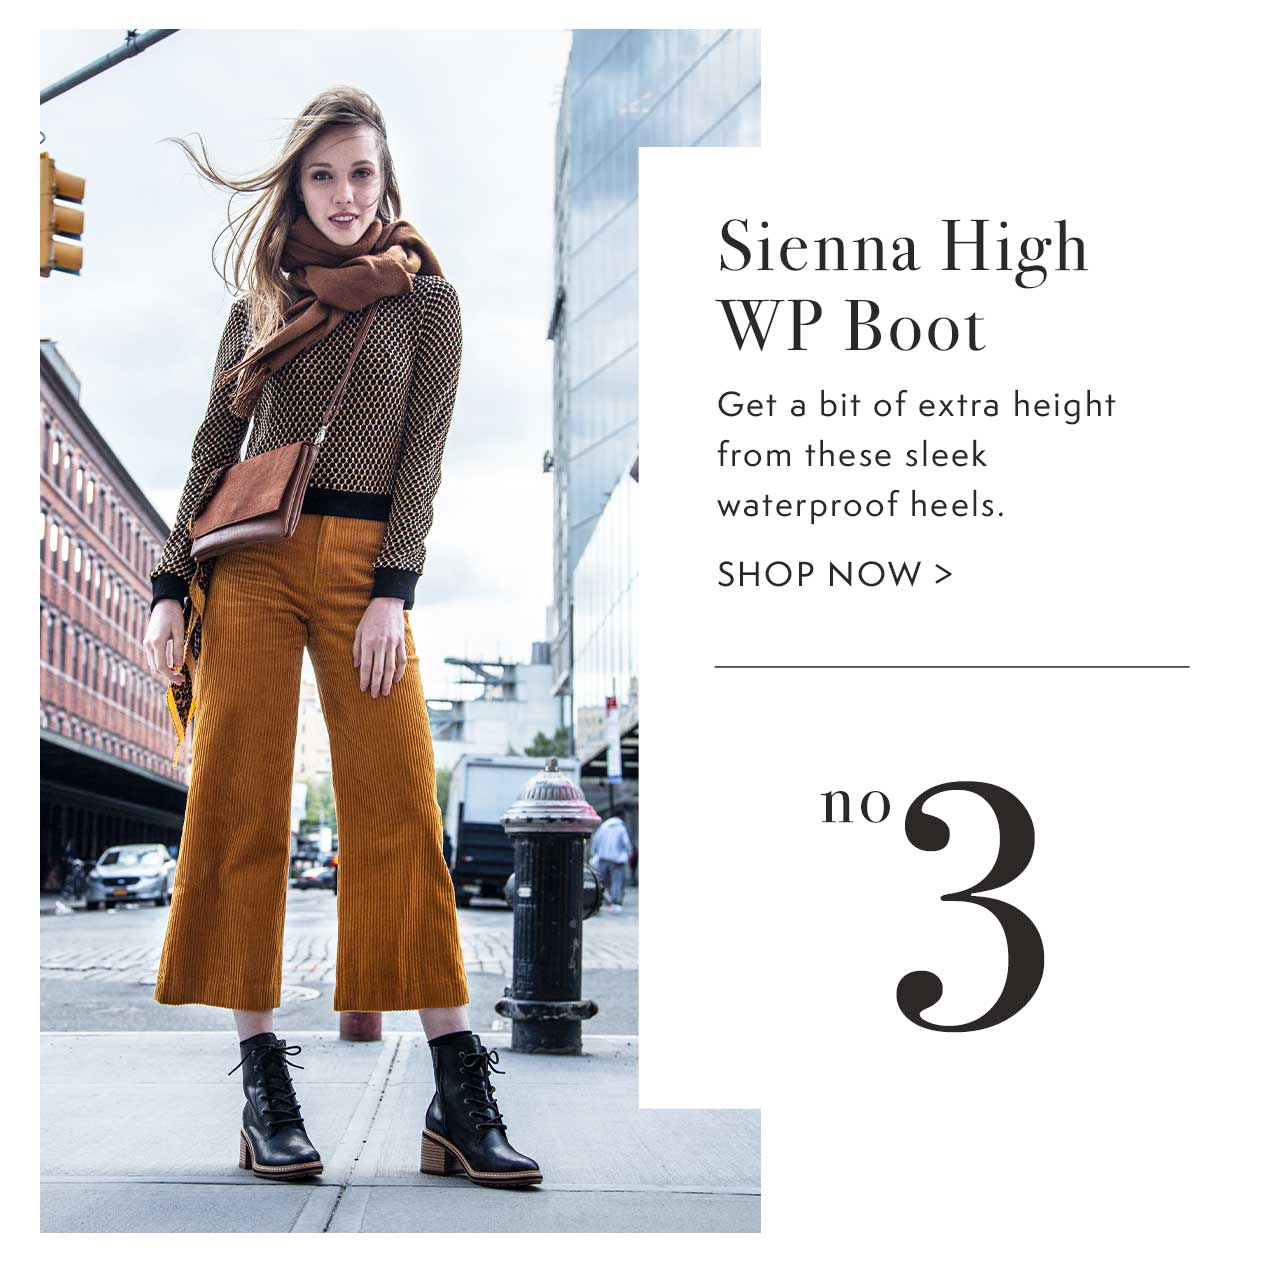 Sienna High WP Boot No. 3                                                 Shop Now